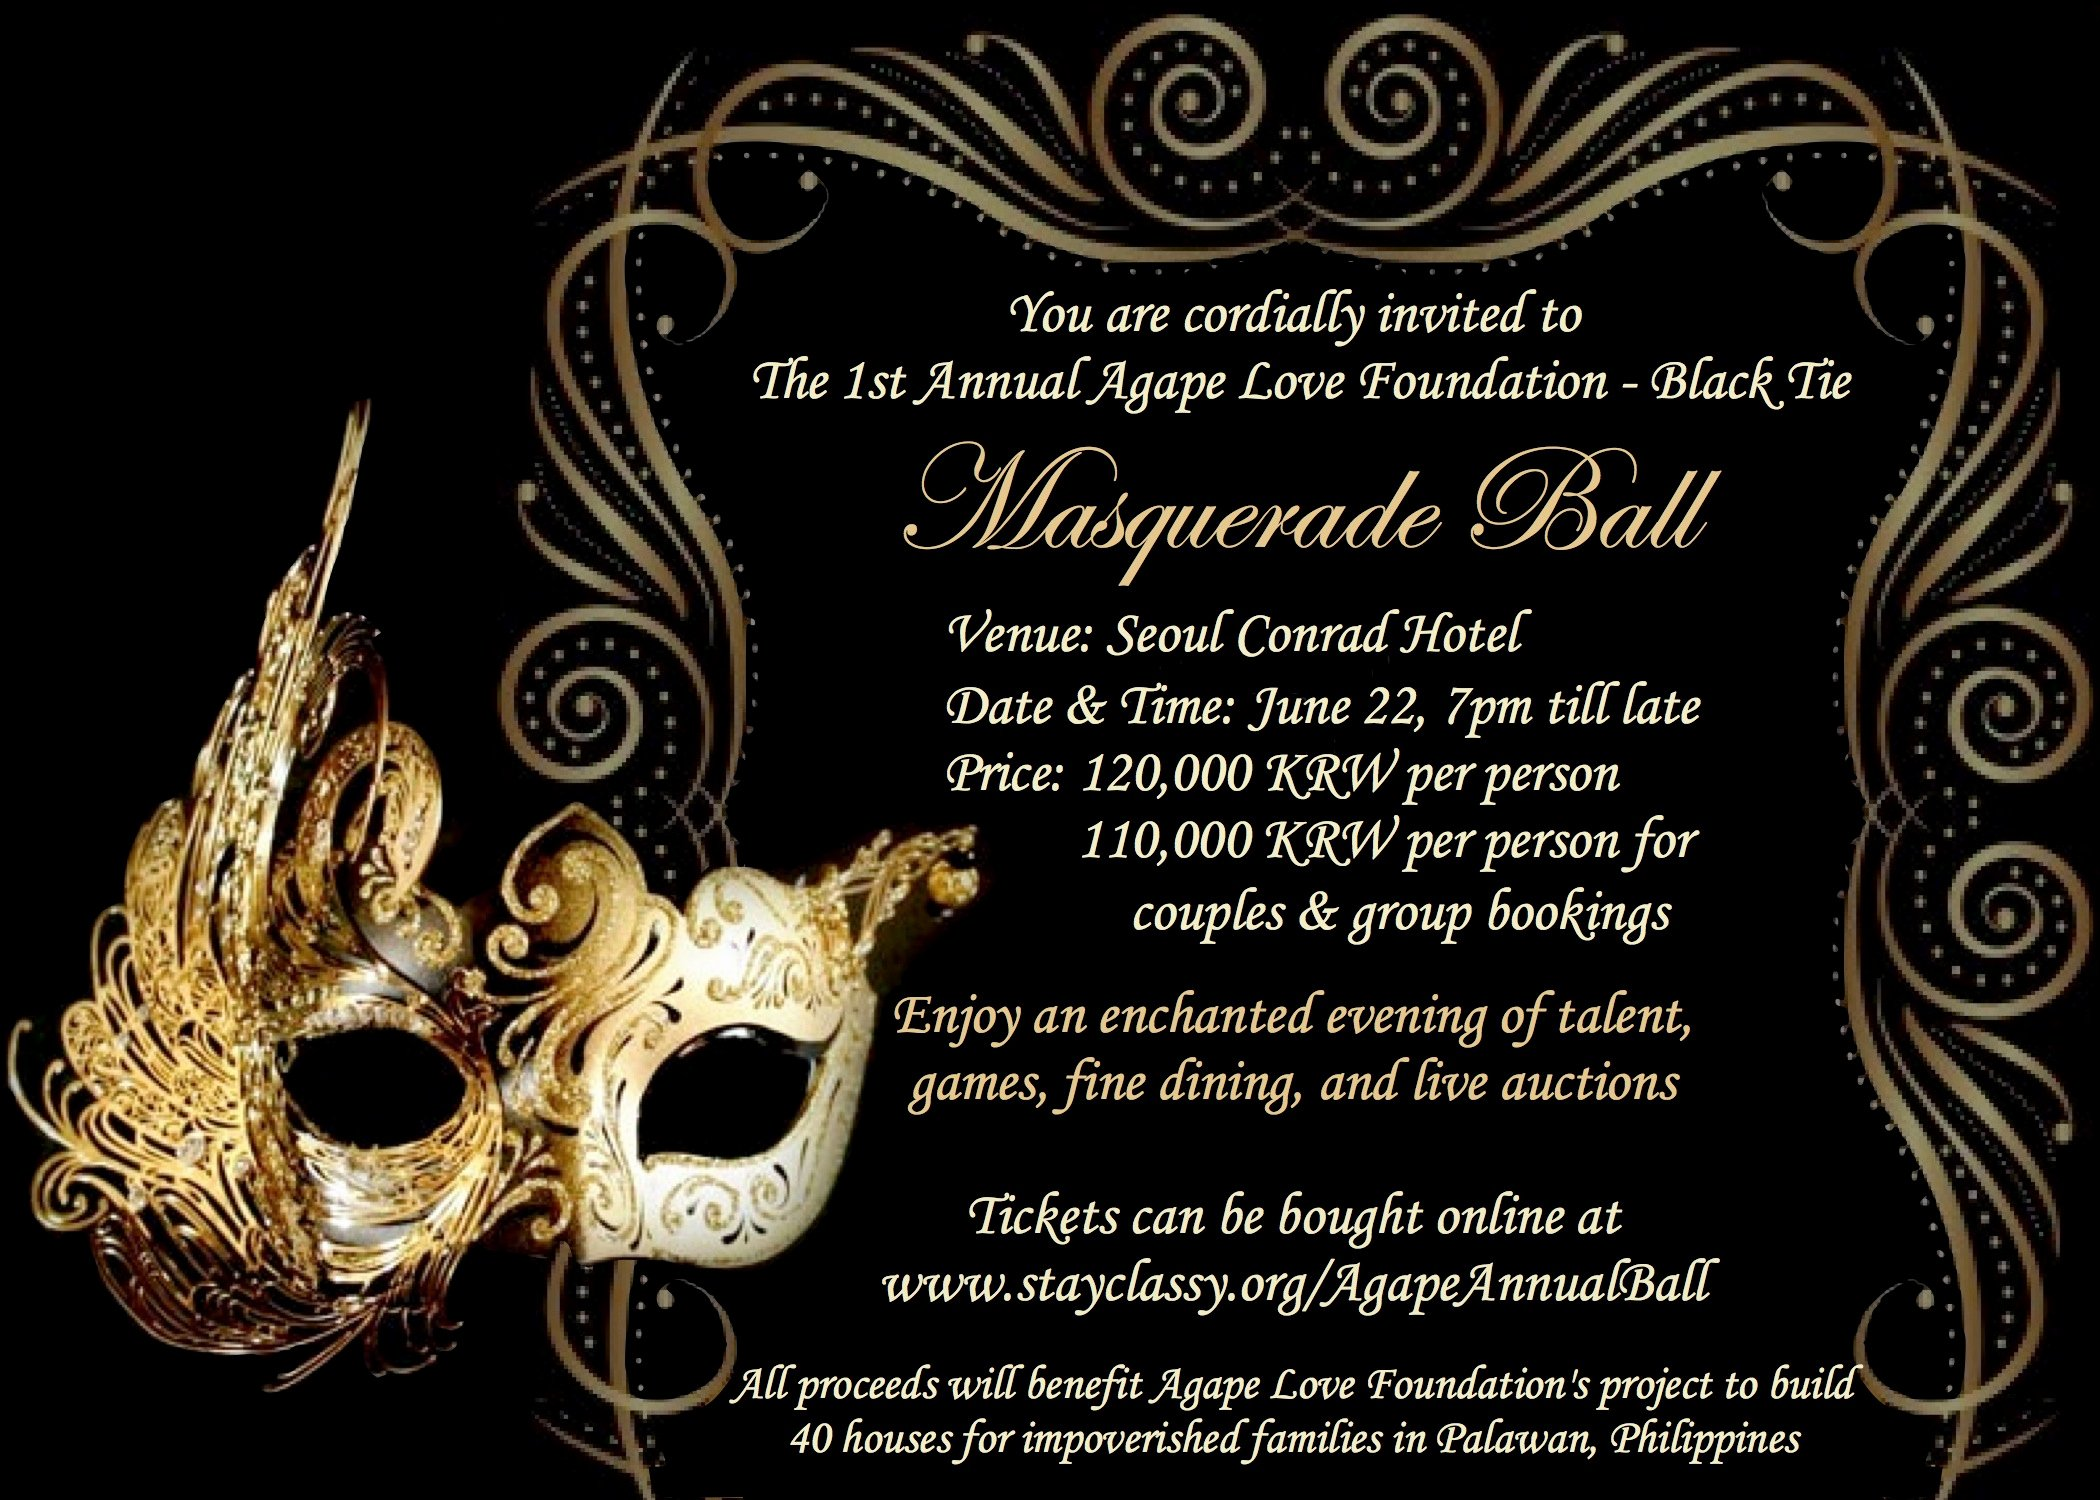 Masquerade Party Invitation Wording Inspirational Birthday Party Invitations Free Templates Free Invitation Templates Drevio